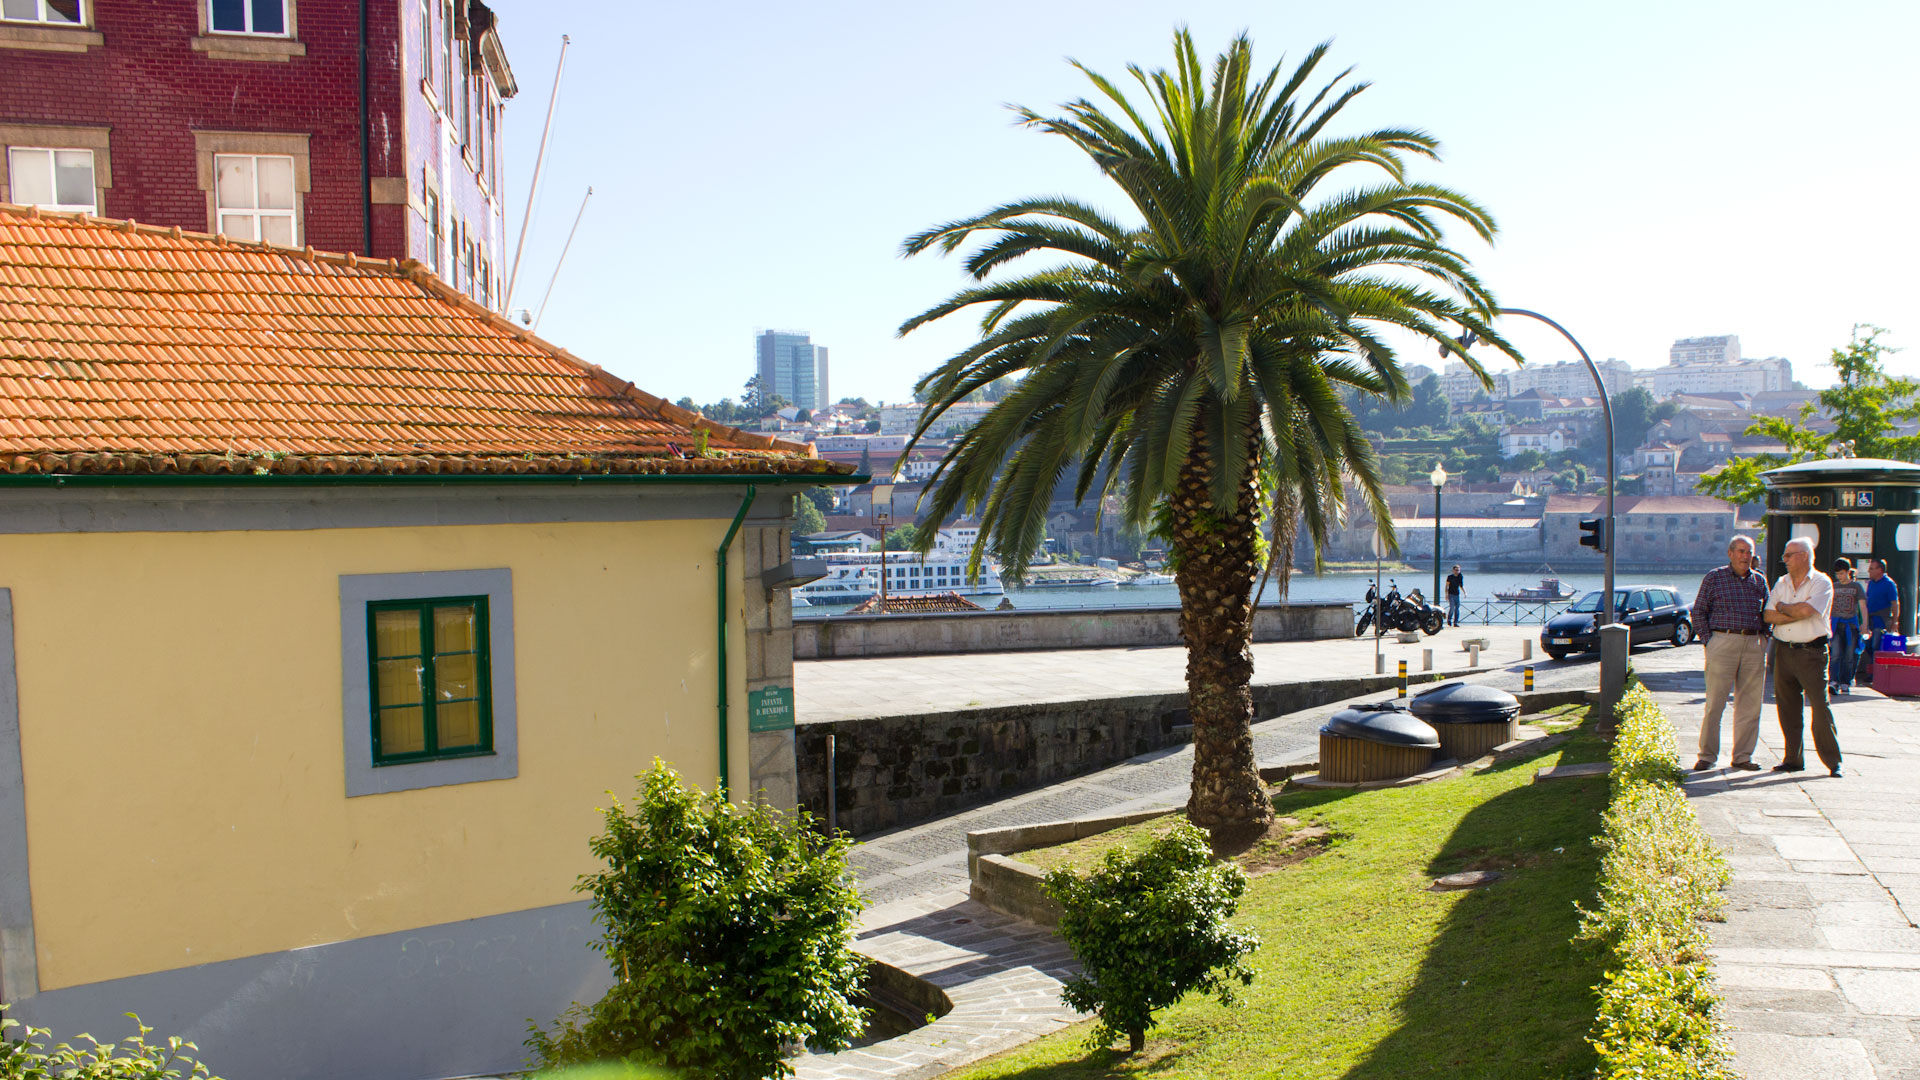 Palms and historical buildings in Portugal